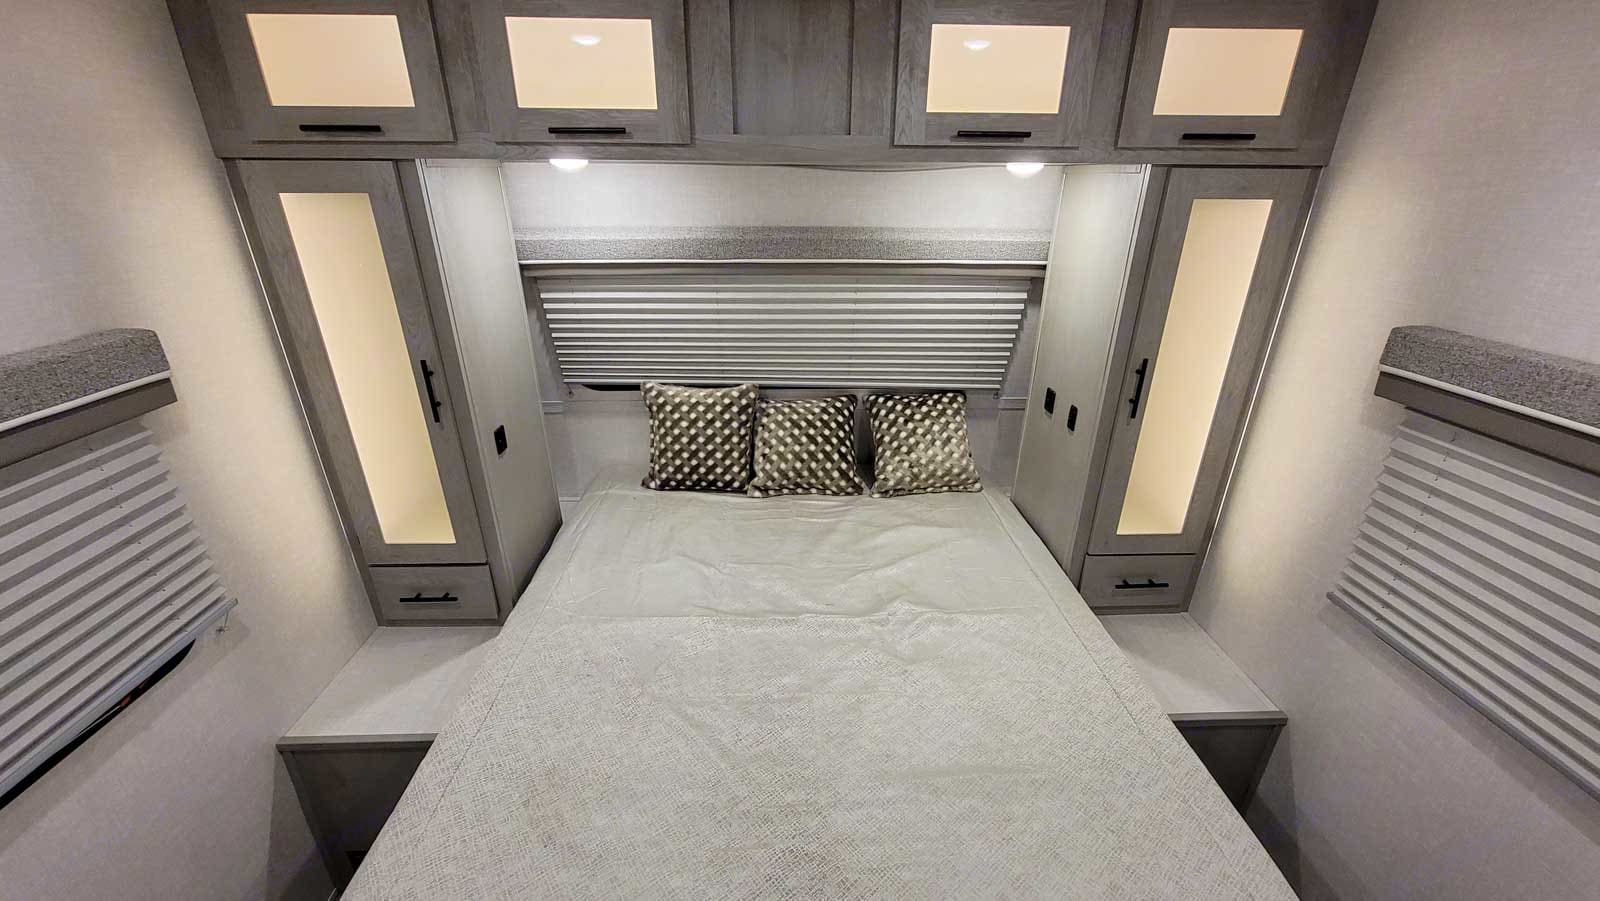 The bedroom is luxurious with separate closets, natural light, USB ports, and hidden platform behind the closets for your book, phone, water.. Forest River Ibex 23RLDS 2021